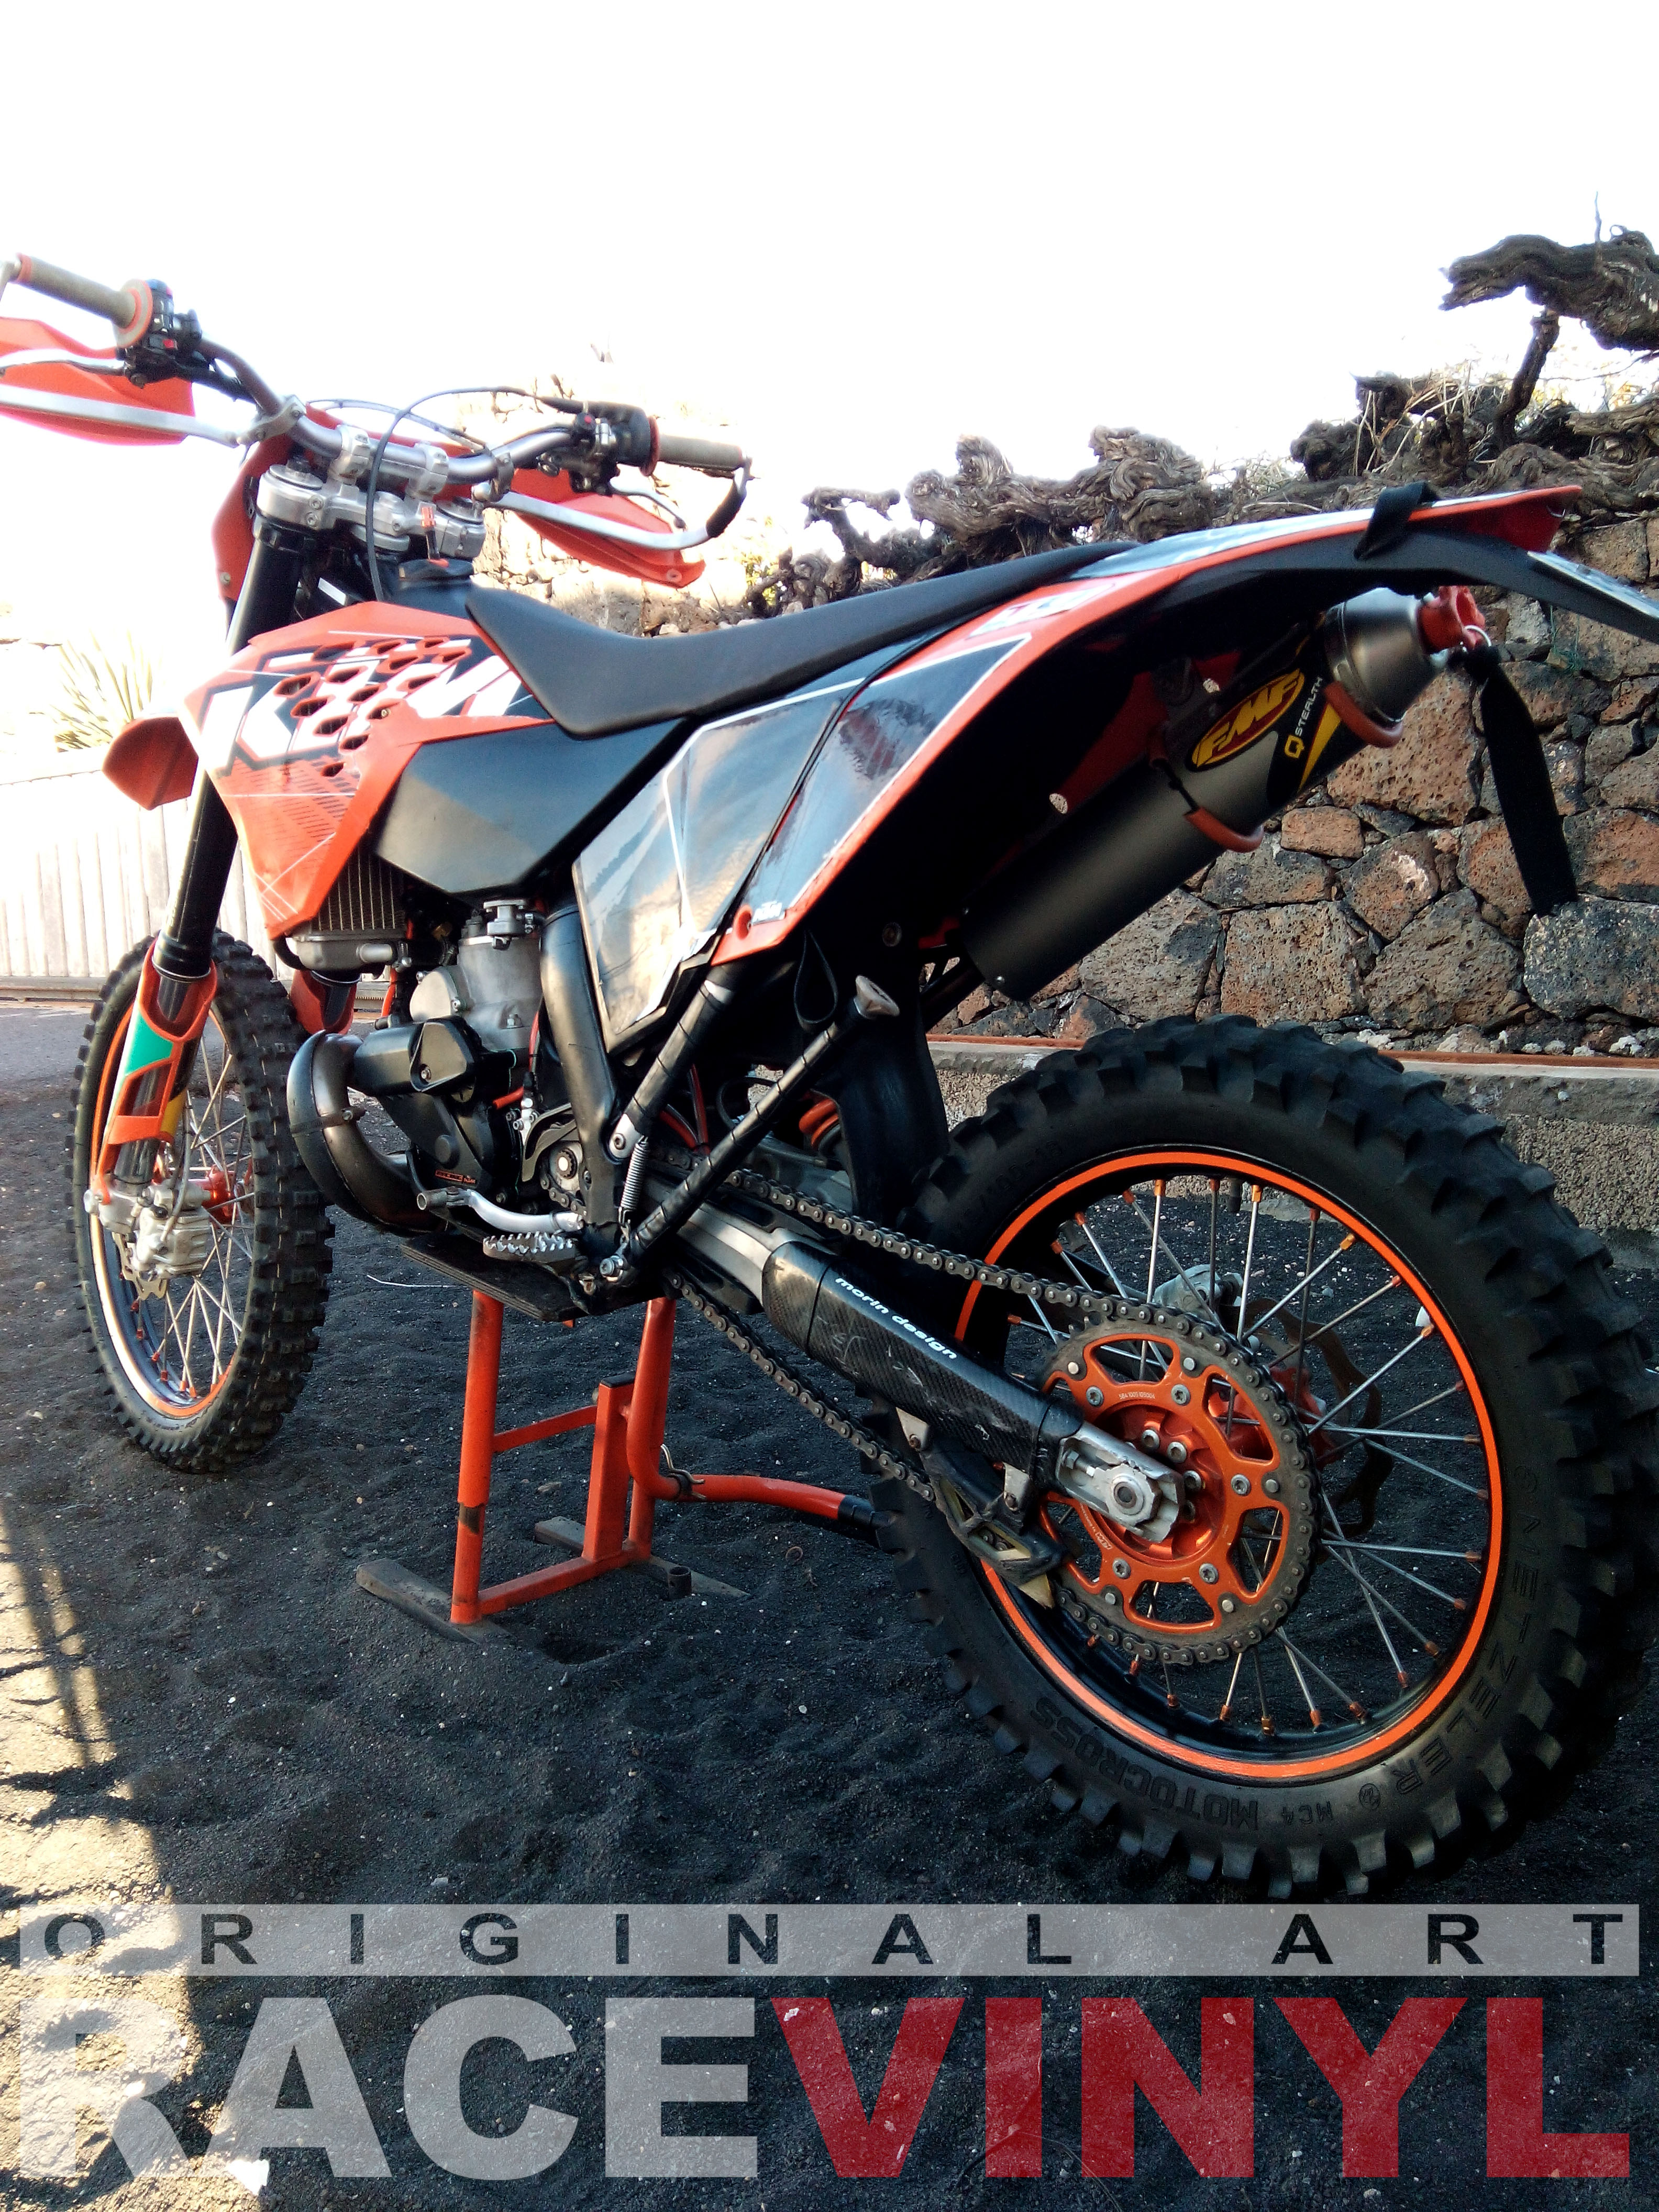 KTM 450 EXC Racing 2005 images #86433